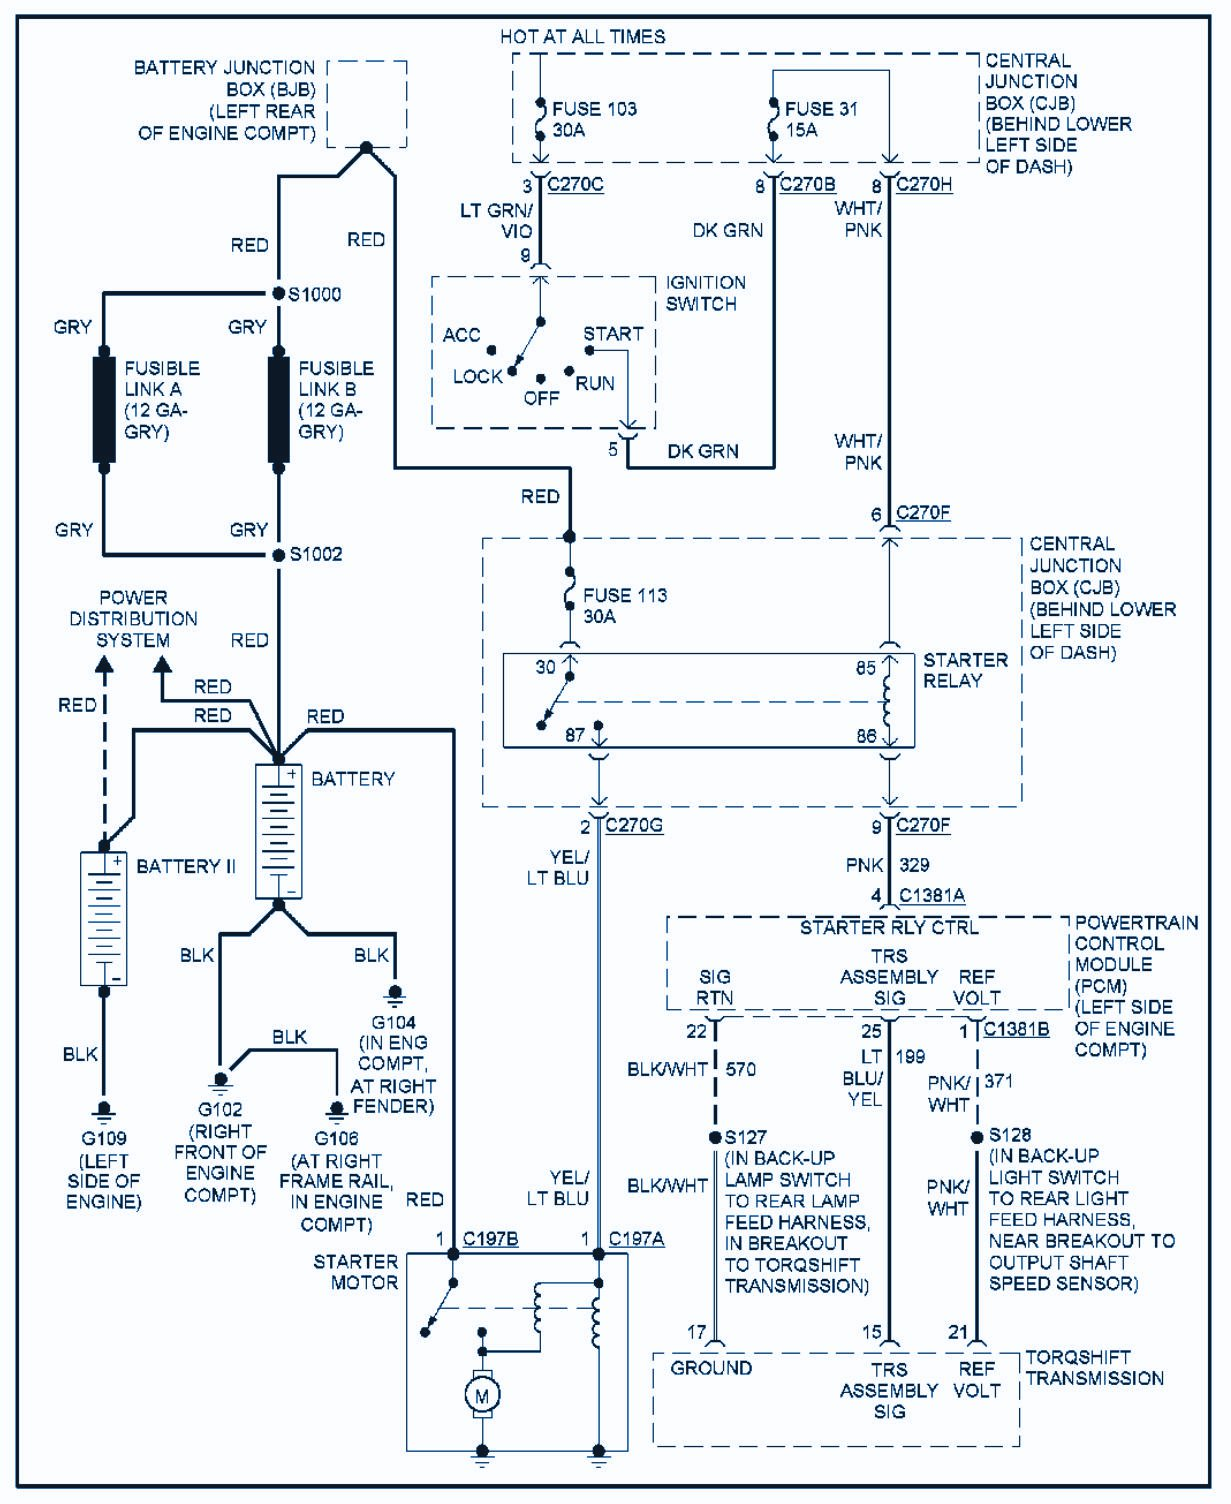 1996 Ford Diesel Engine Wiring Diagram